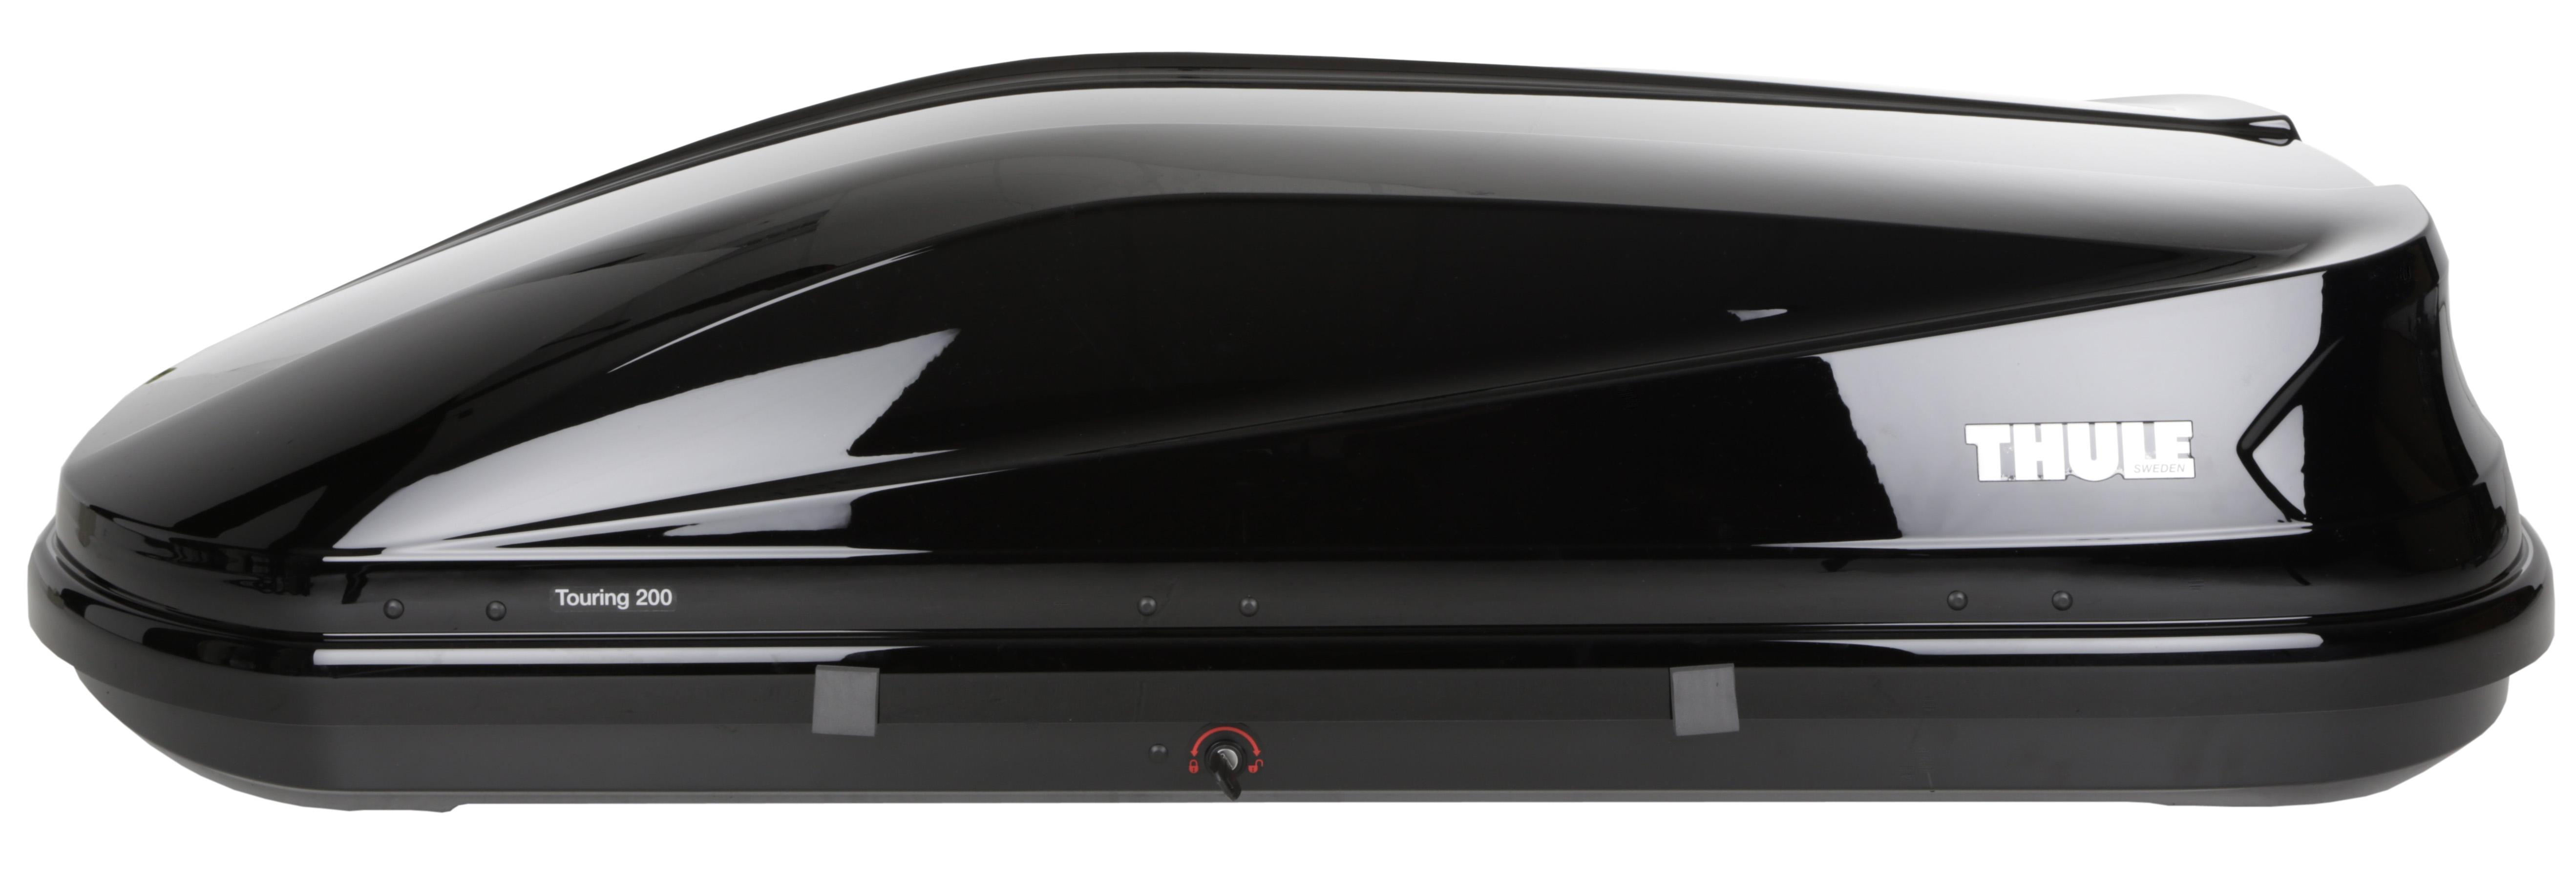 thule touring 200 roof box 400l glossy black 50kg dual. Black Bedroom Furniture Sets. Home Design Ideas